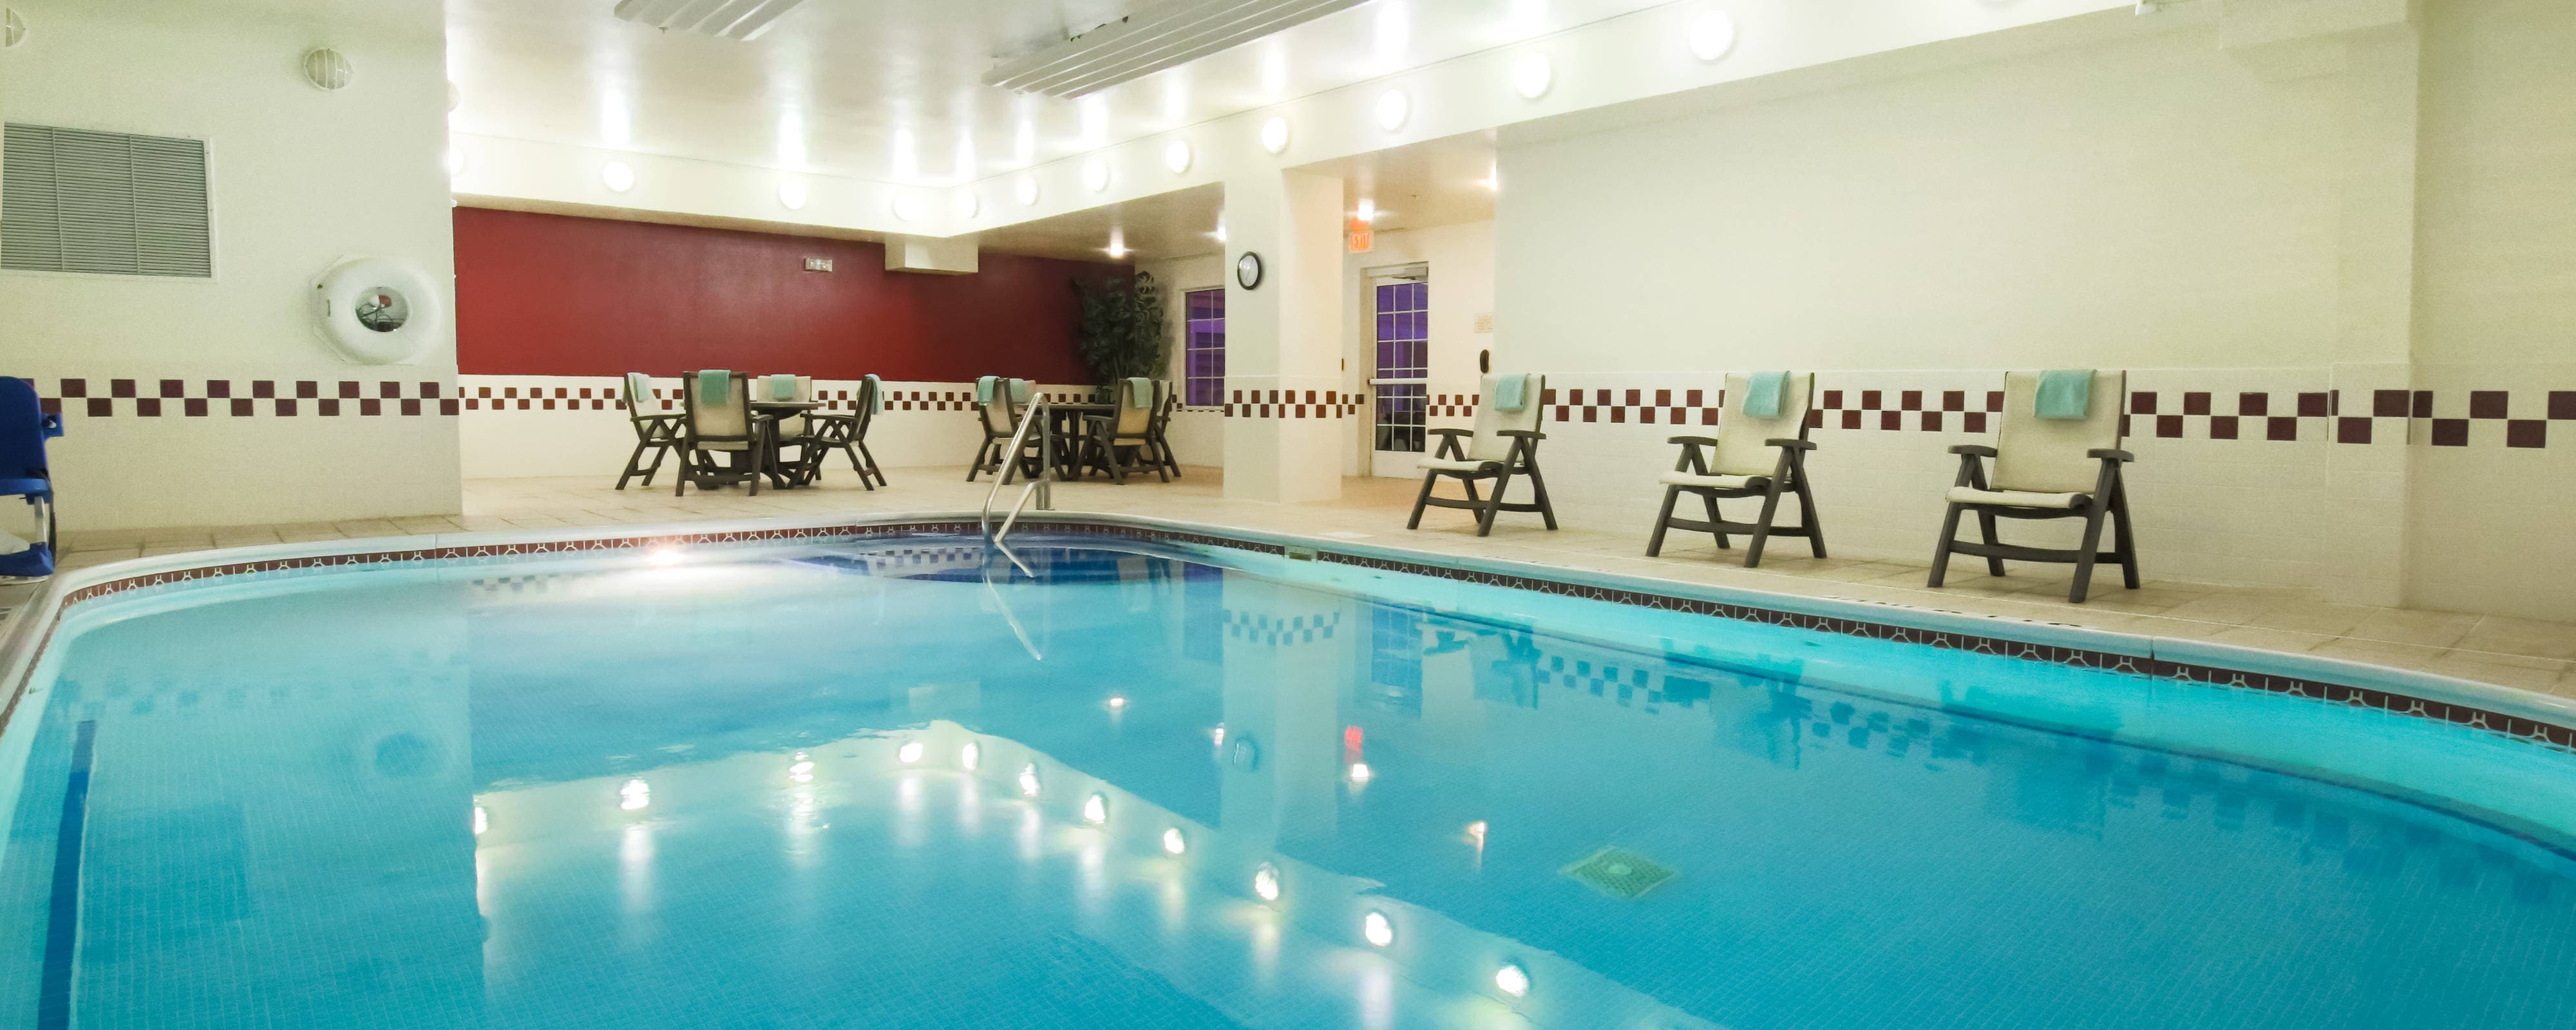 Exton Pennsylvania Hotel Indoor pool